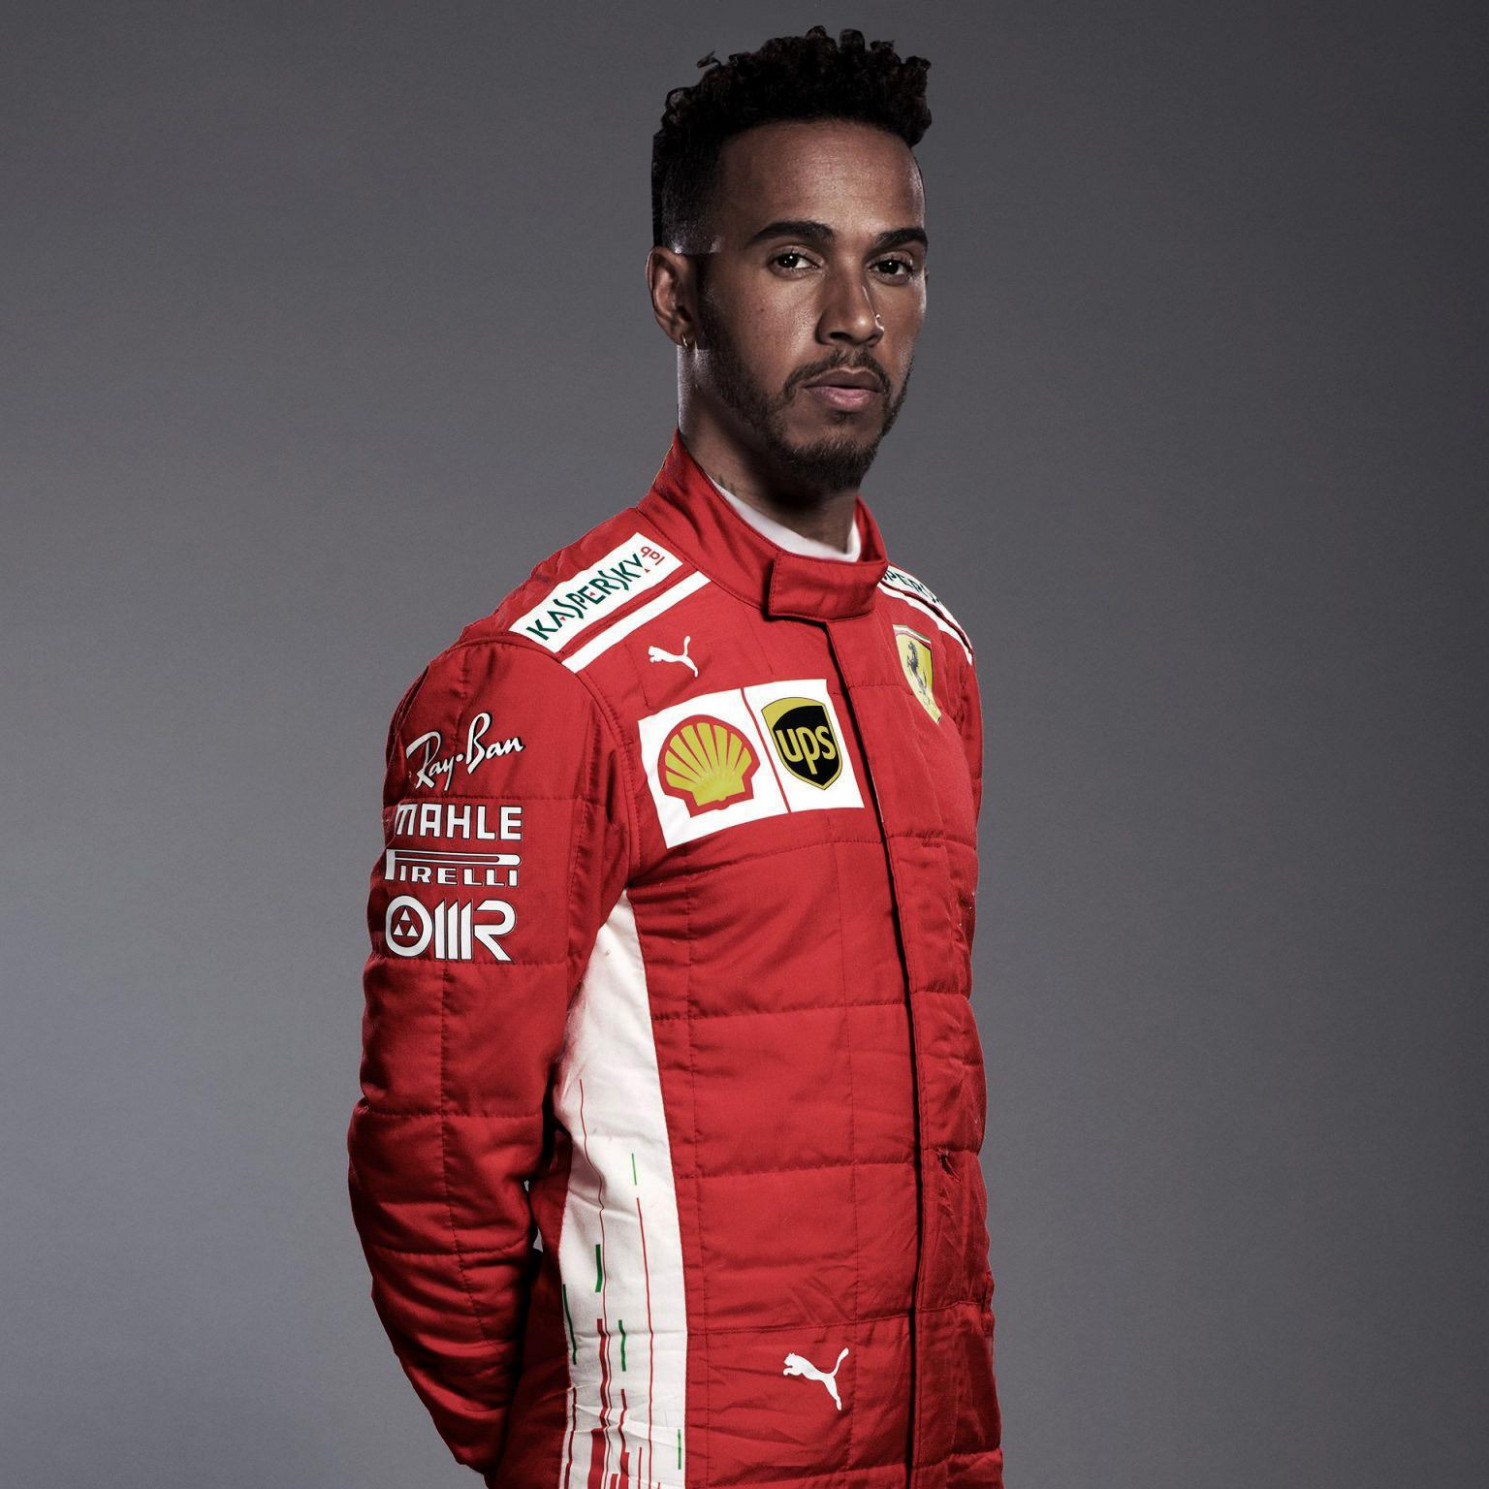 Lewis Hamilton with Ferrari